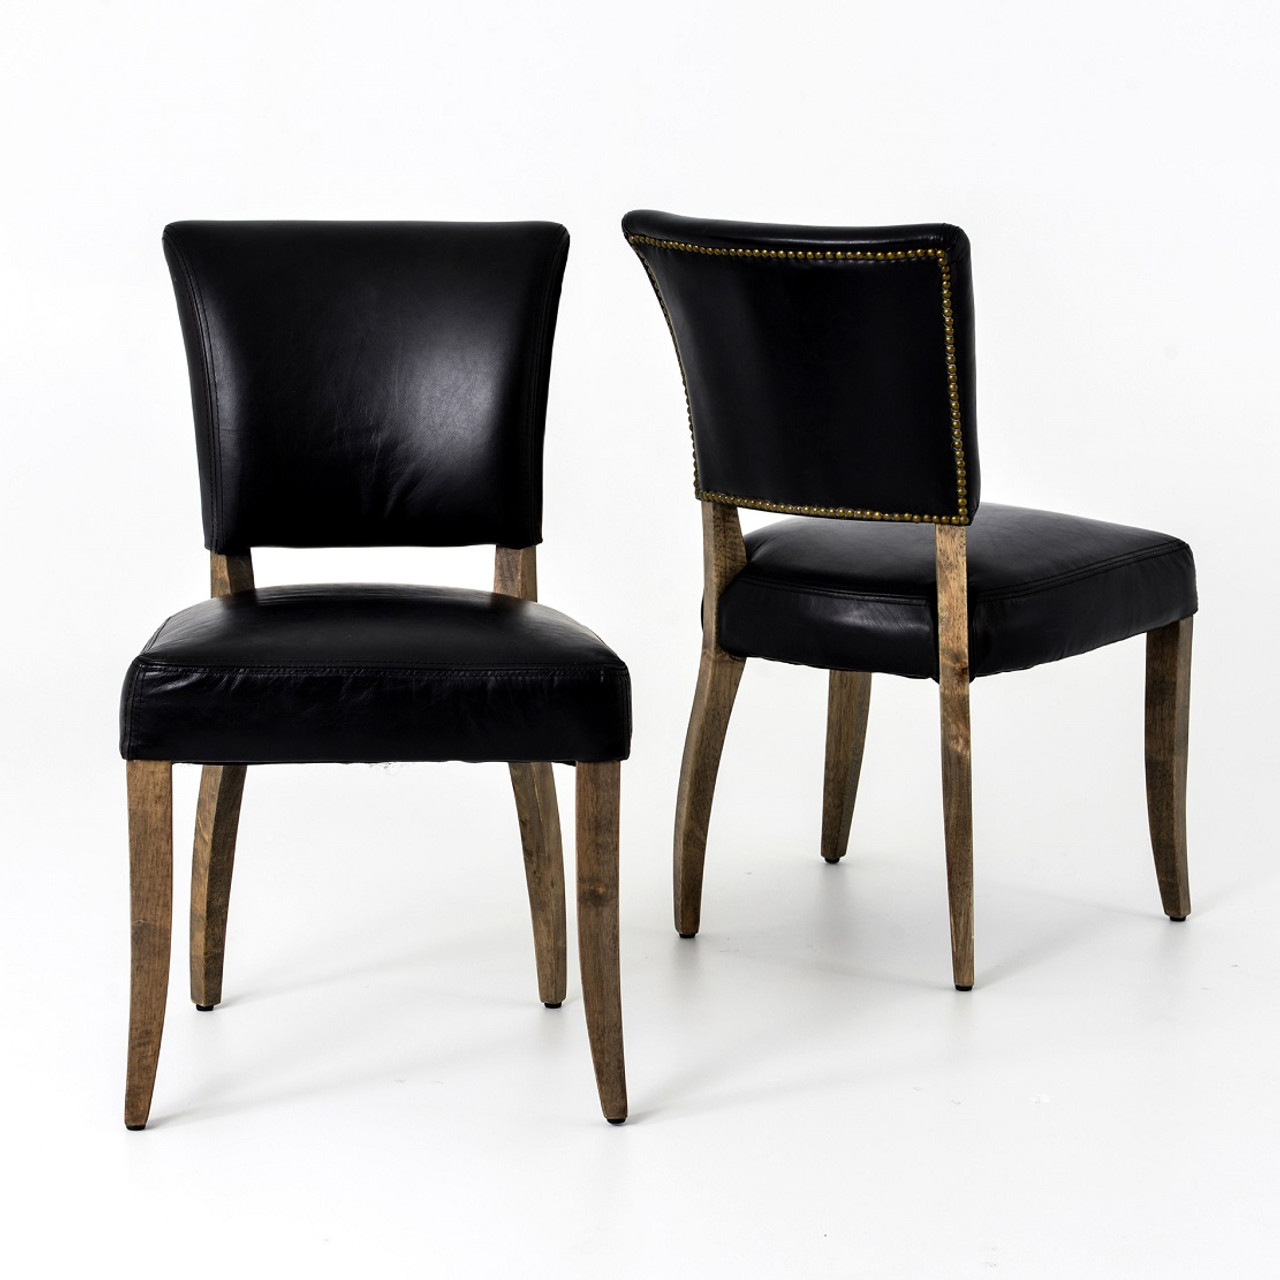 Exceptional Mimi Saddle Black Leather Dining Chair